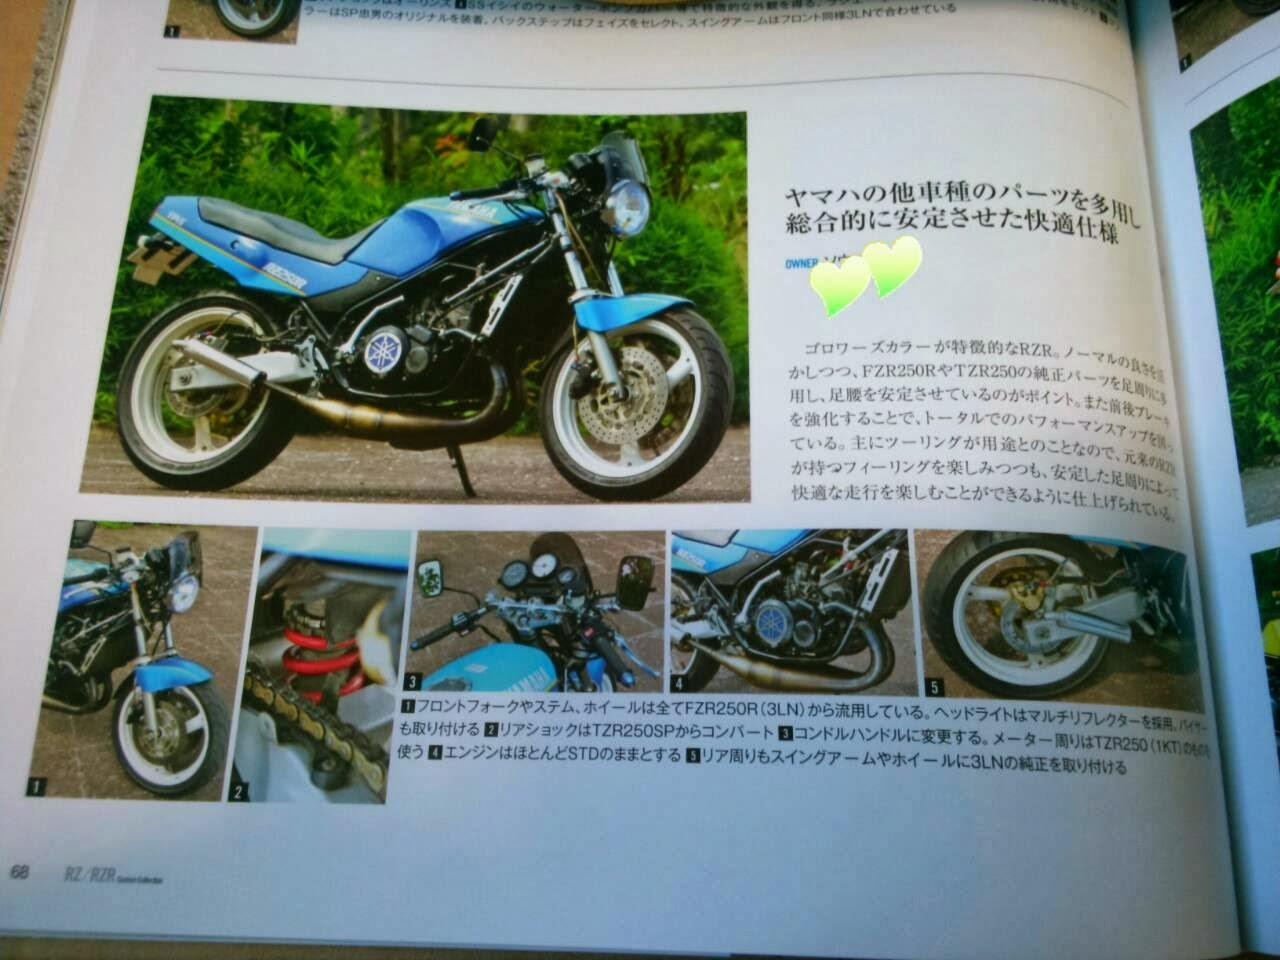 Moped Luau 2014 Puch Za50 Wiring Diagram Soma Sans Rz Made It Into A Magazine Check Out